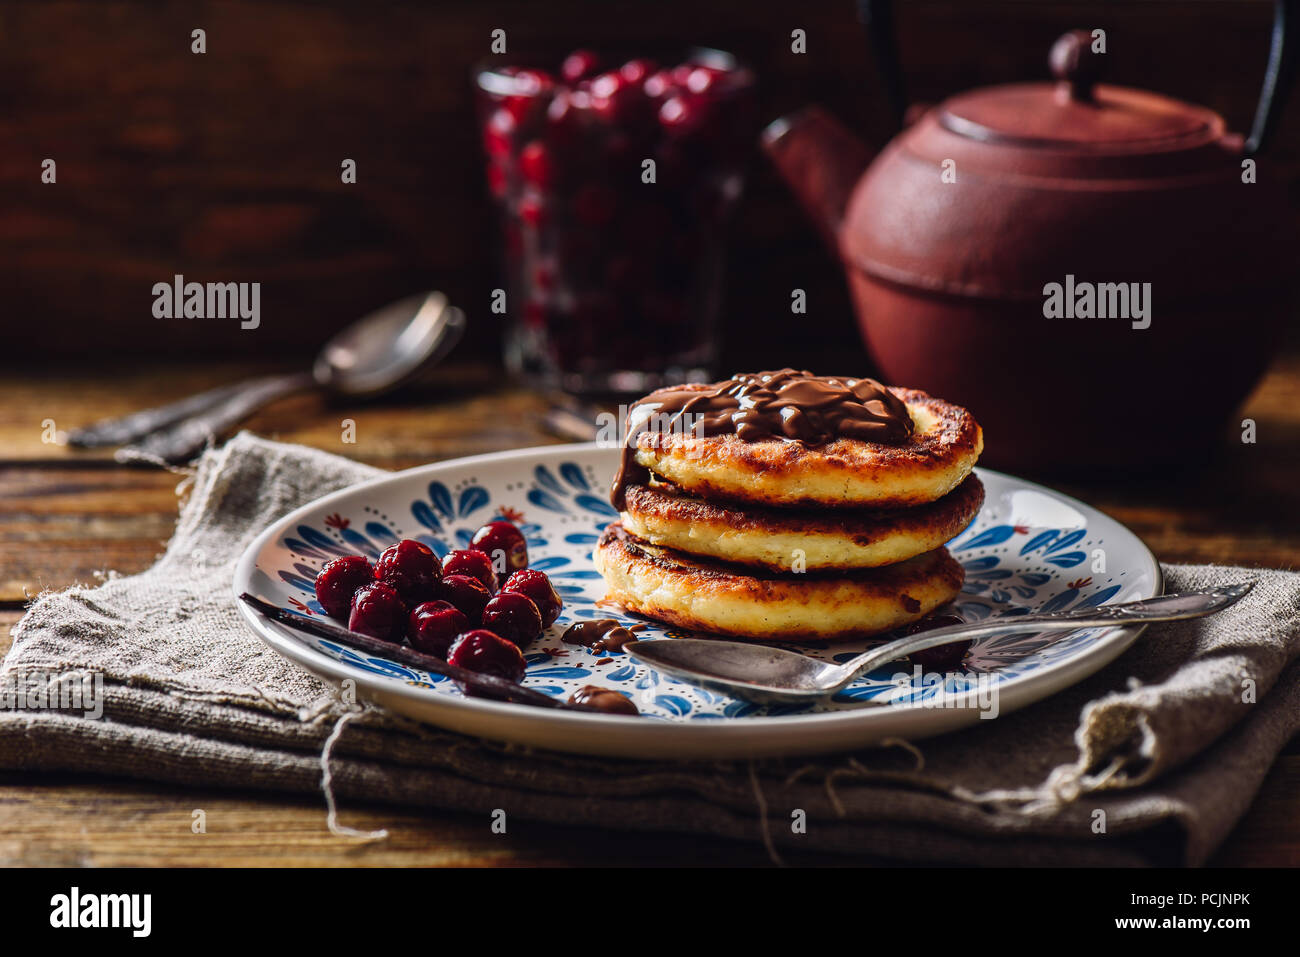 Russian Quark Pancakes with Chocolate Topping and Frozen Cherry. Tea Pot with Spoons and Glass of Berries on Background. - Stock Image